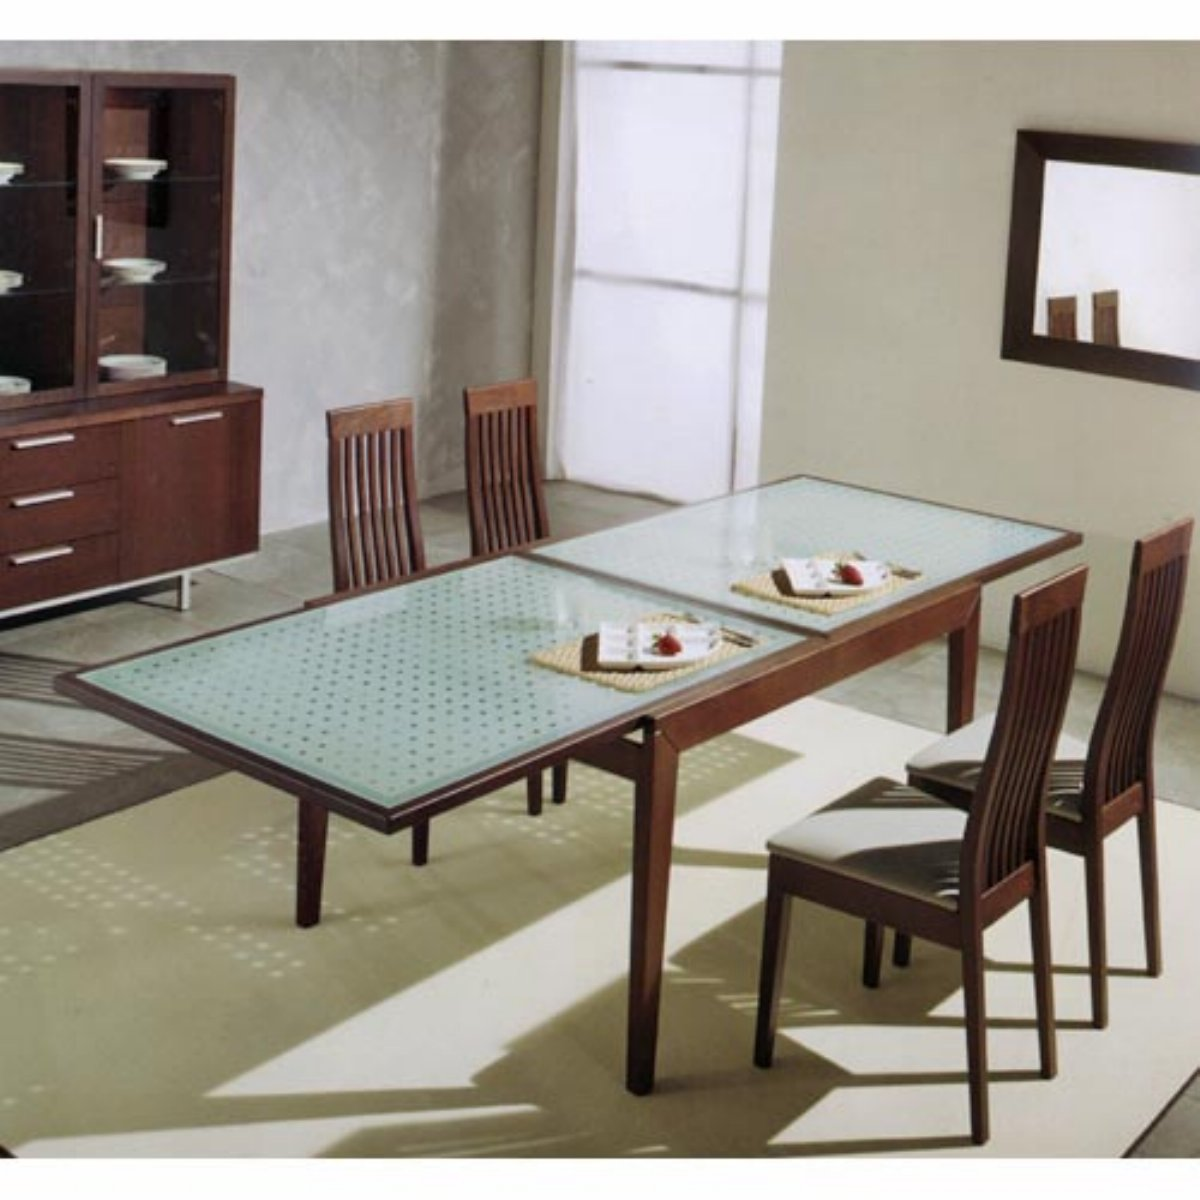 expandable dining table set with glass table and wooden chair on wheat carpet for inspiring dining room decor ideas